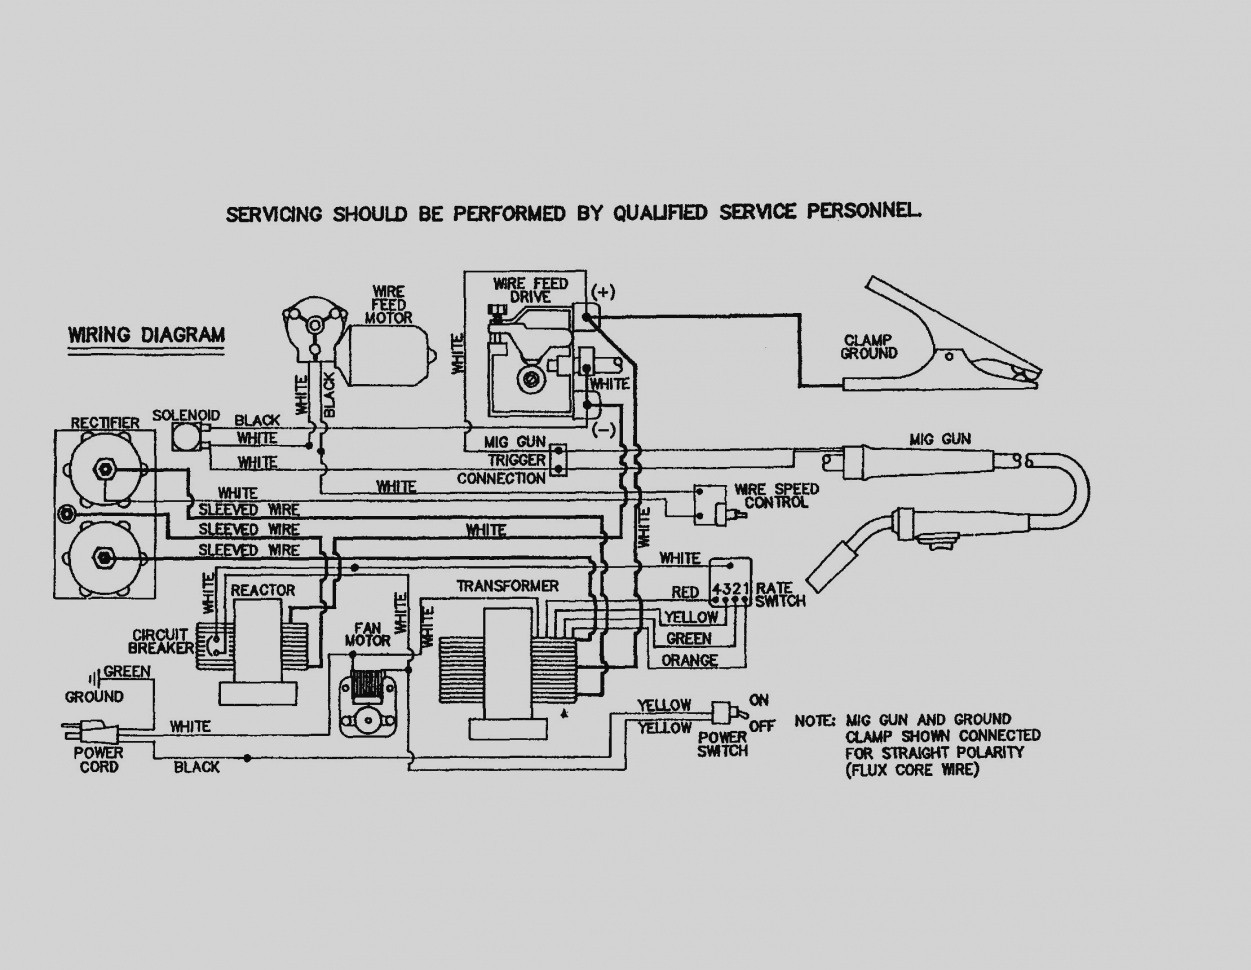 lincoln 225 arc welder wiring diagram | free wiring diagram arc fault wiring diagram